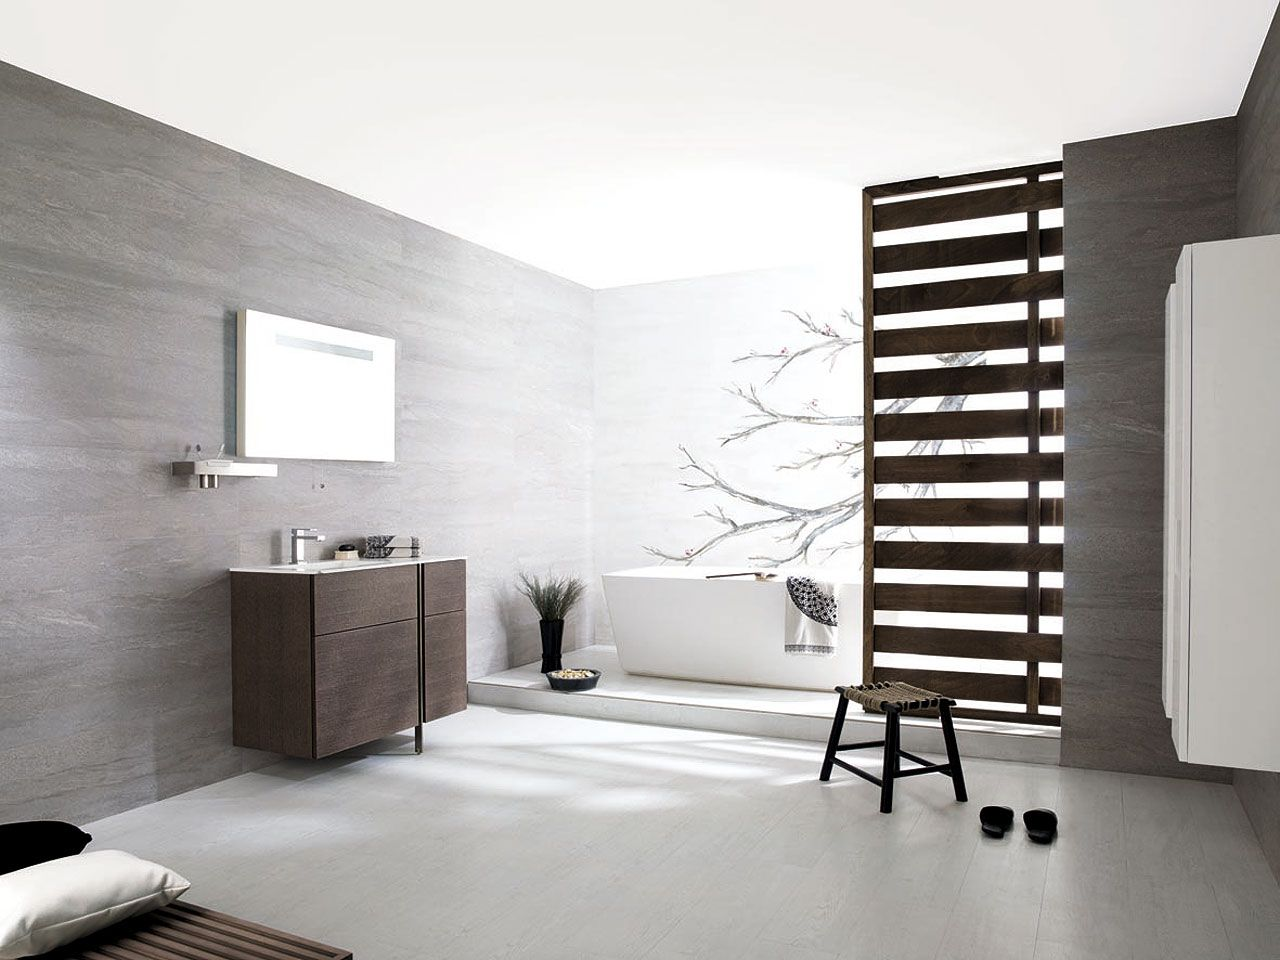 Modern wall tile by fap futura tiles for kitchen amp bathroom - Porcelanosa S Ceramic Tiles For Simple Stylish Bathroom Floor Tiles Par Ker Montana Blank Wall Tiles Madagascar Natural